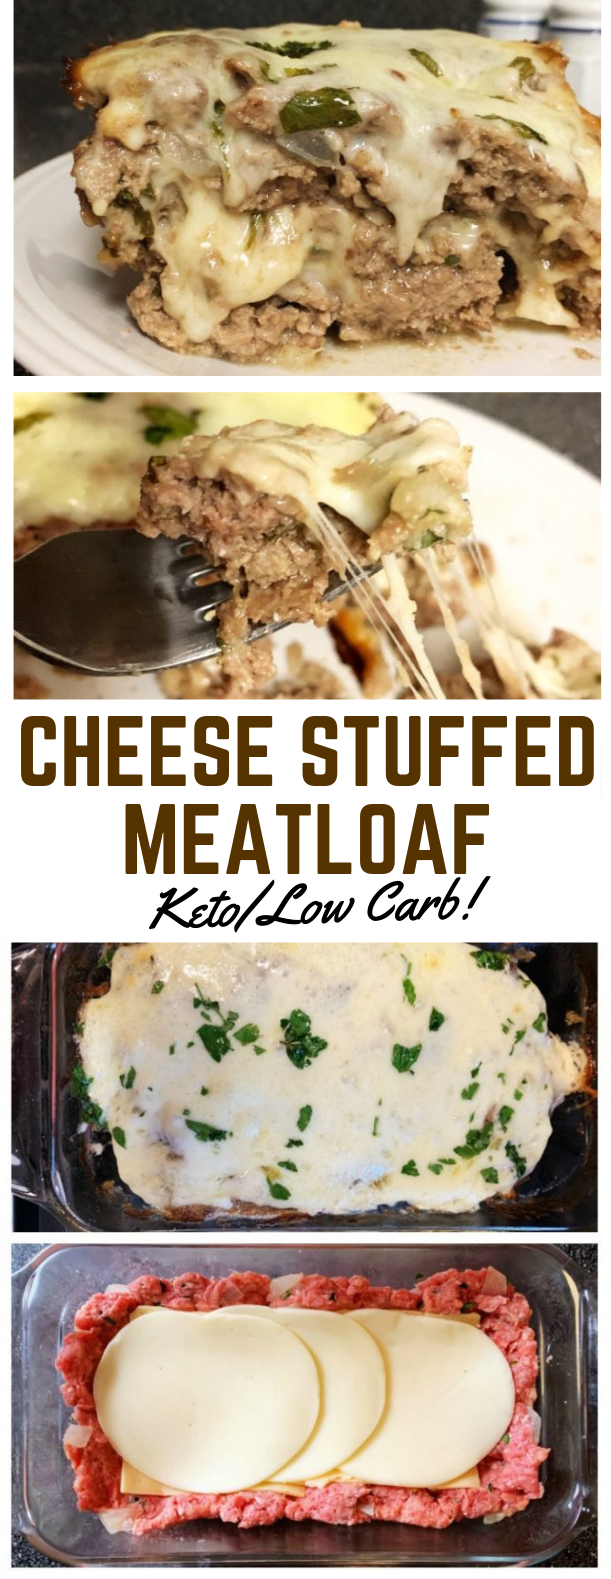 STUFFED MEATLOAF – KETO / LOW CARB #diet #ketogenic